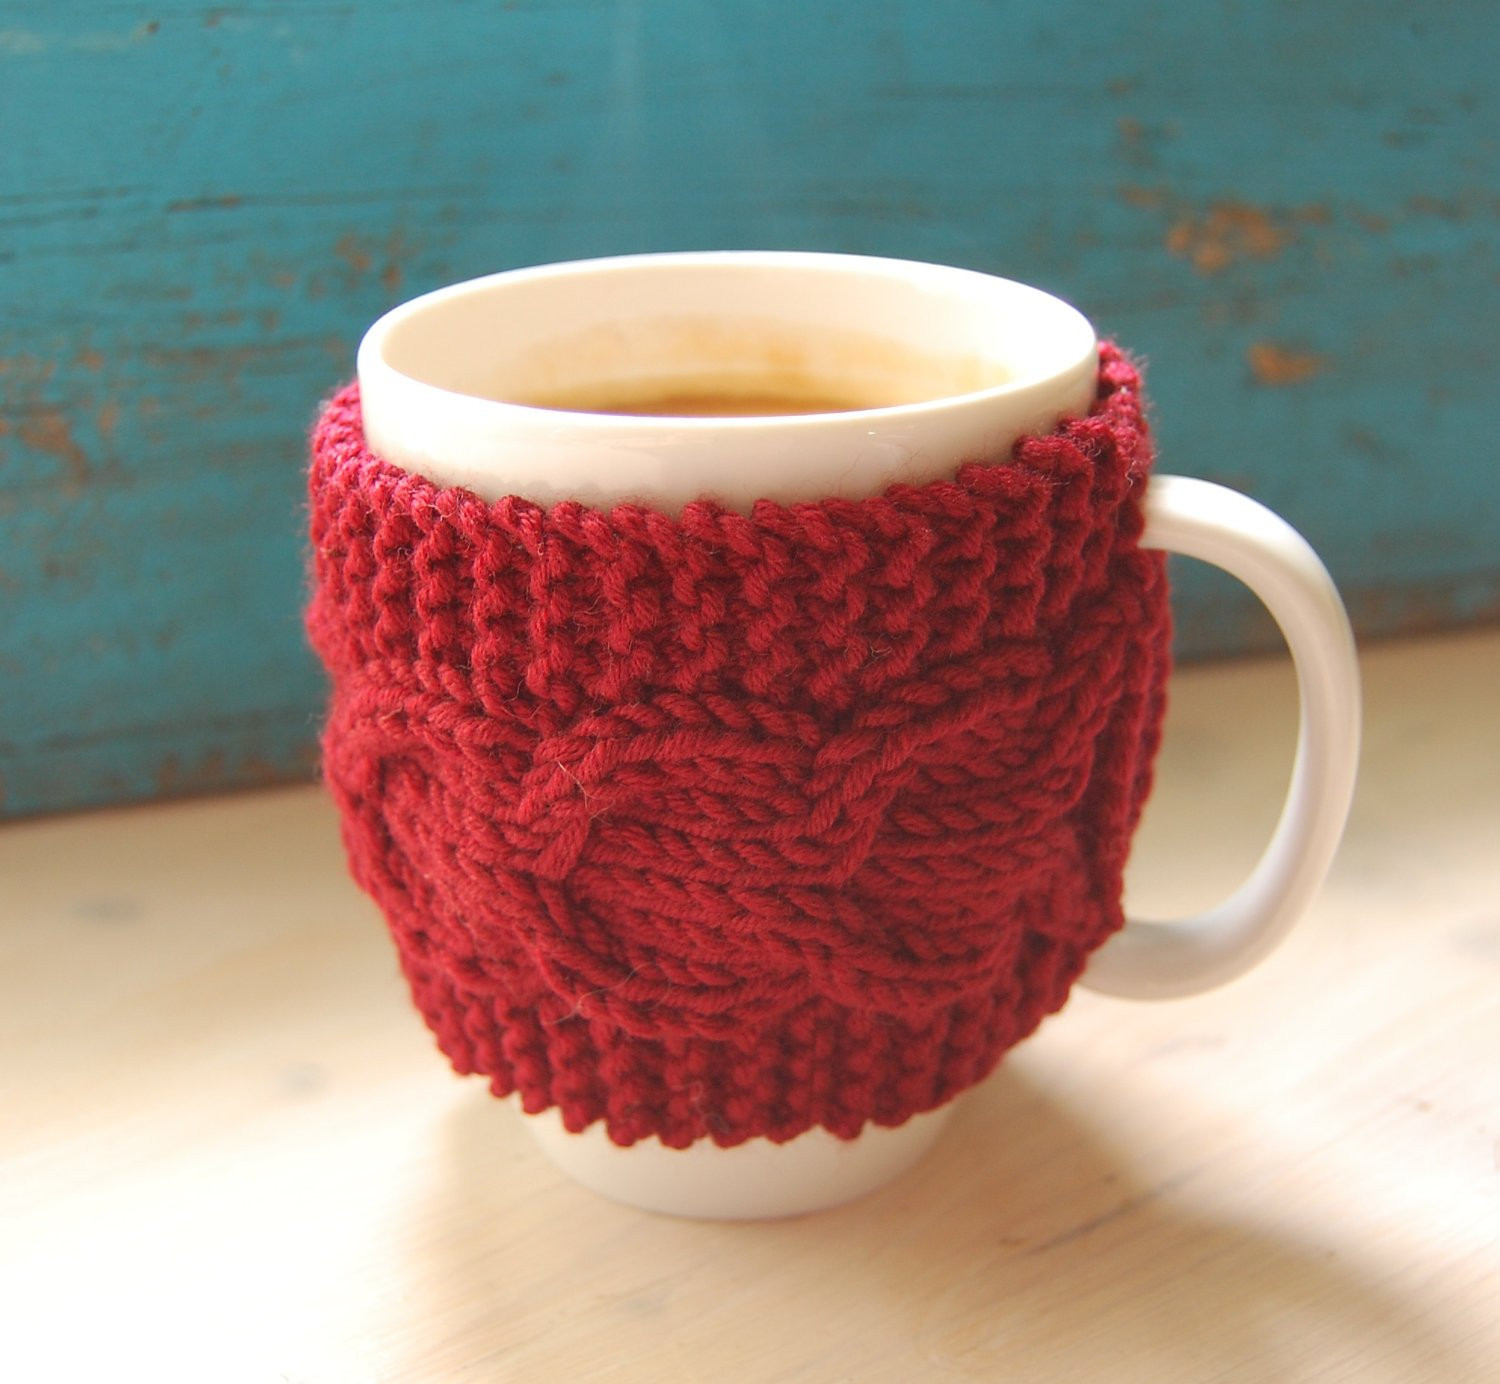 Best Of Items Similar to Knit Coffee Mug Cozy with Cable Pattern Knitted Mug Cozy Of Unique 48 Photos Knitted Mug Cozy